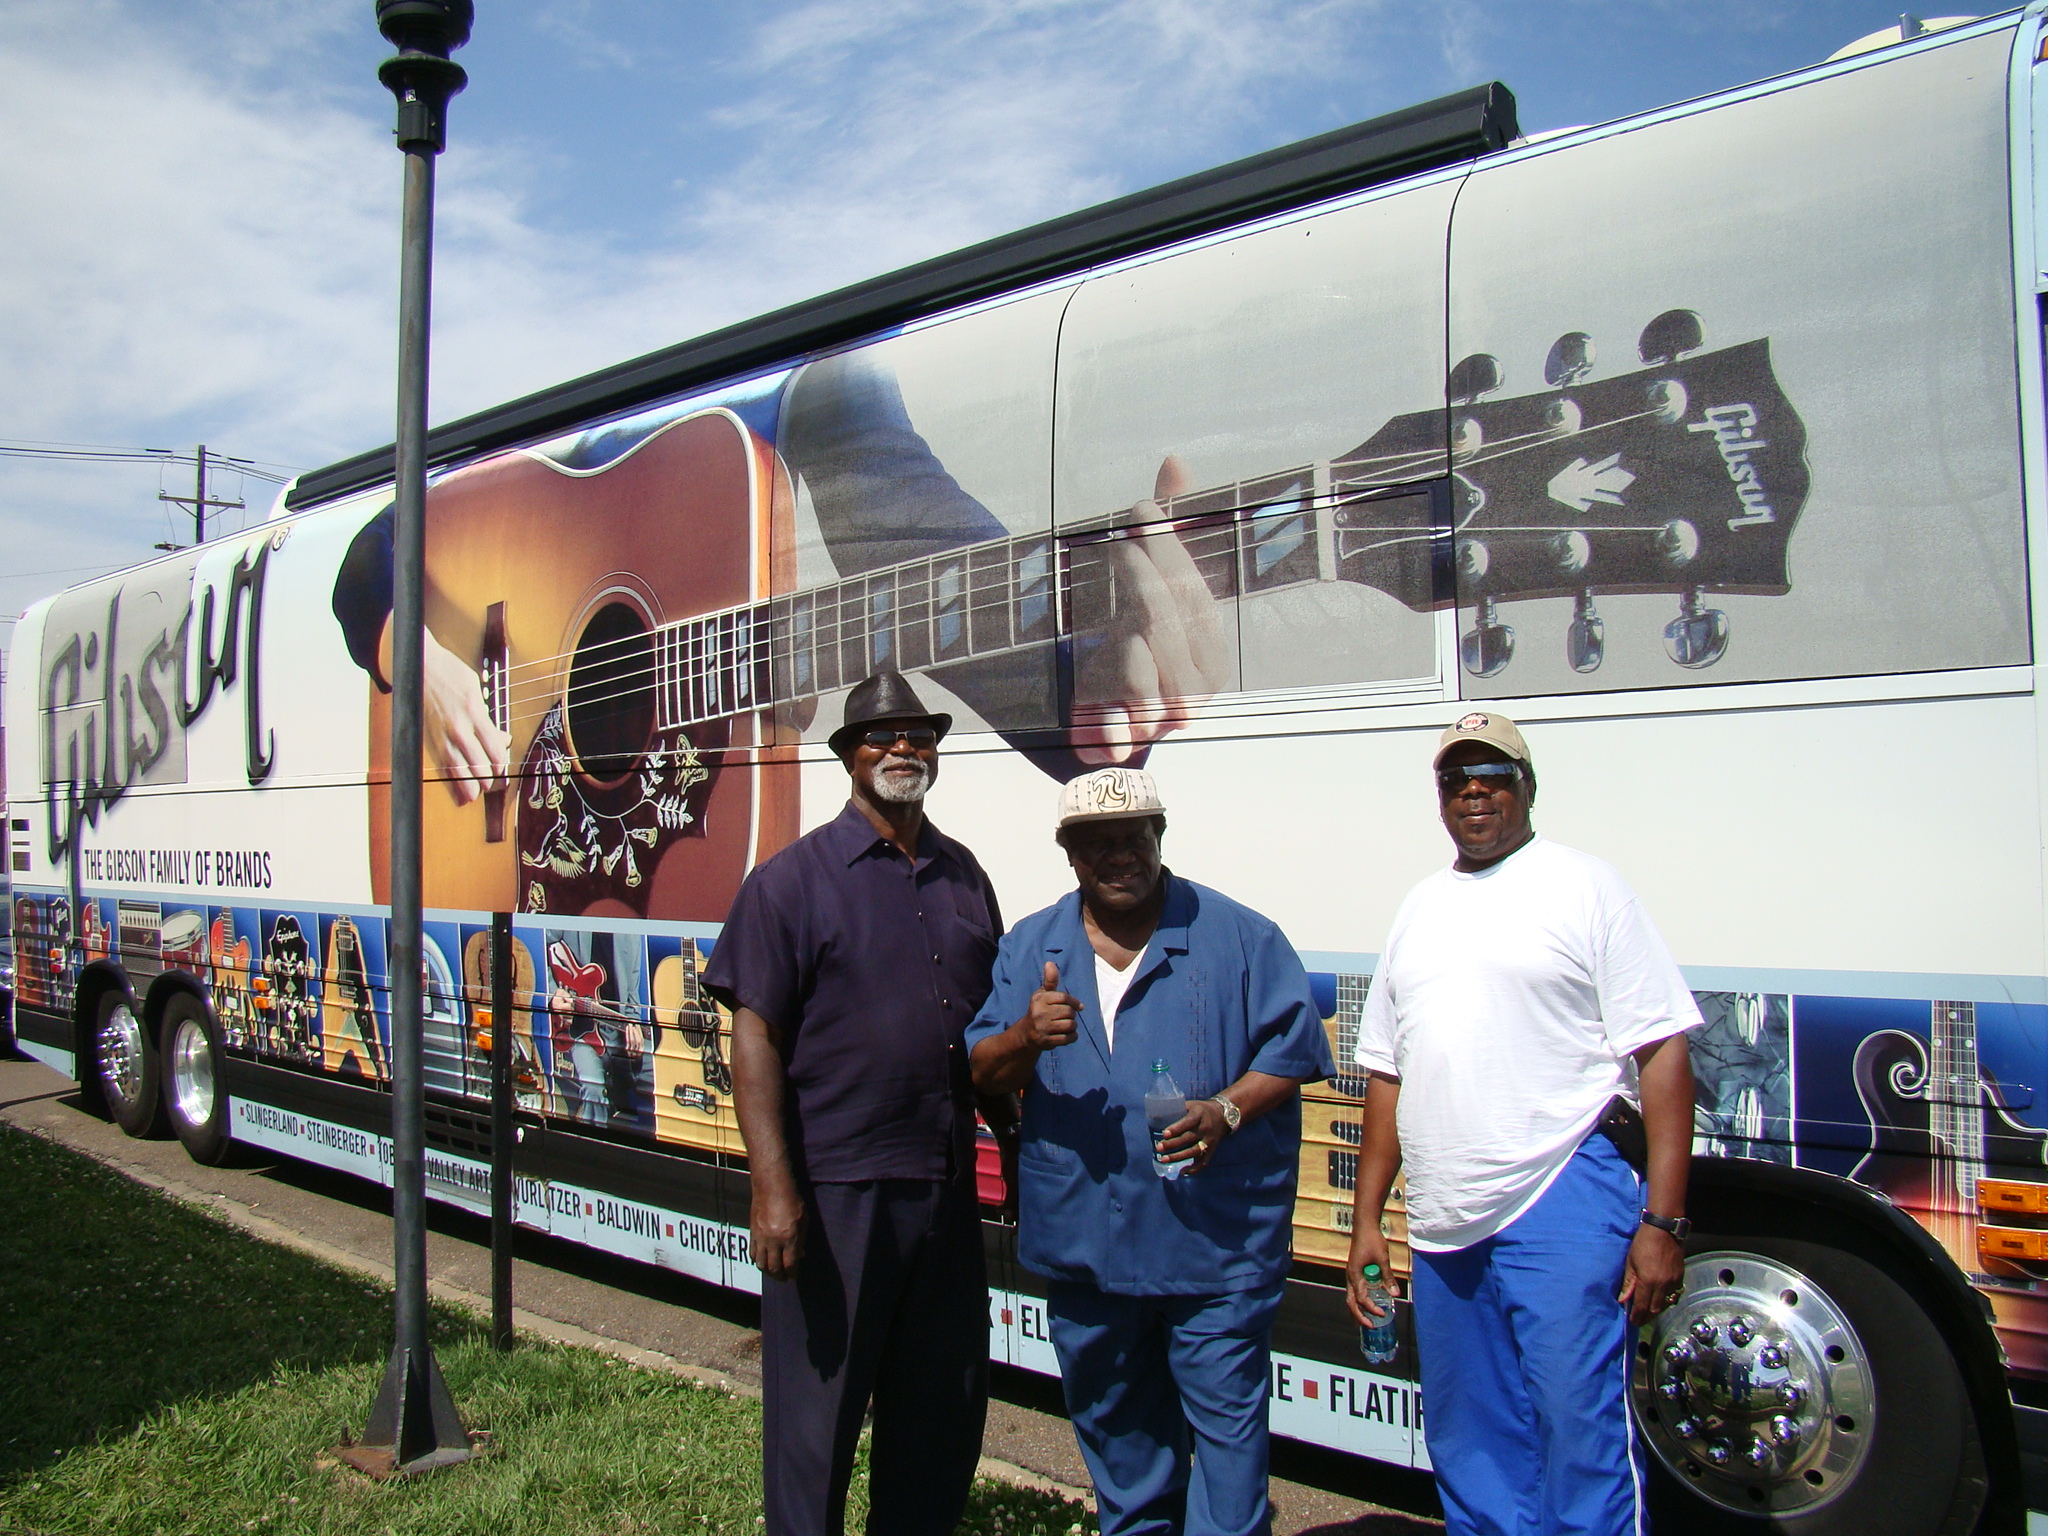 Abdul, King & Rick with The Gibson Bus